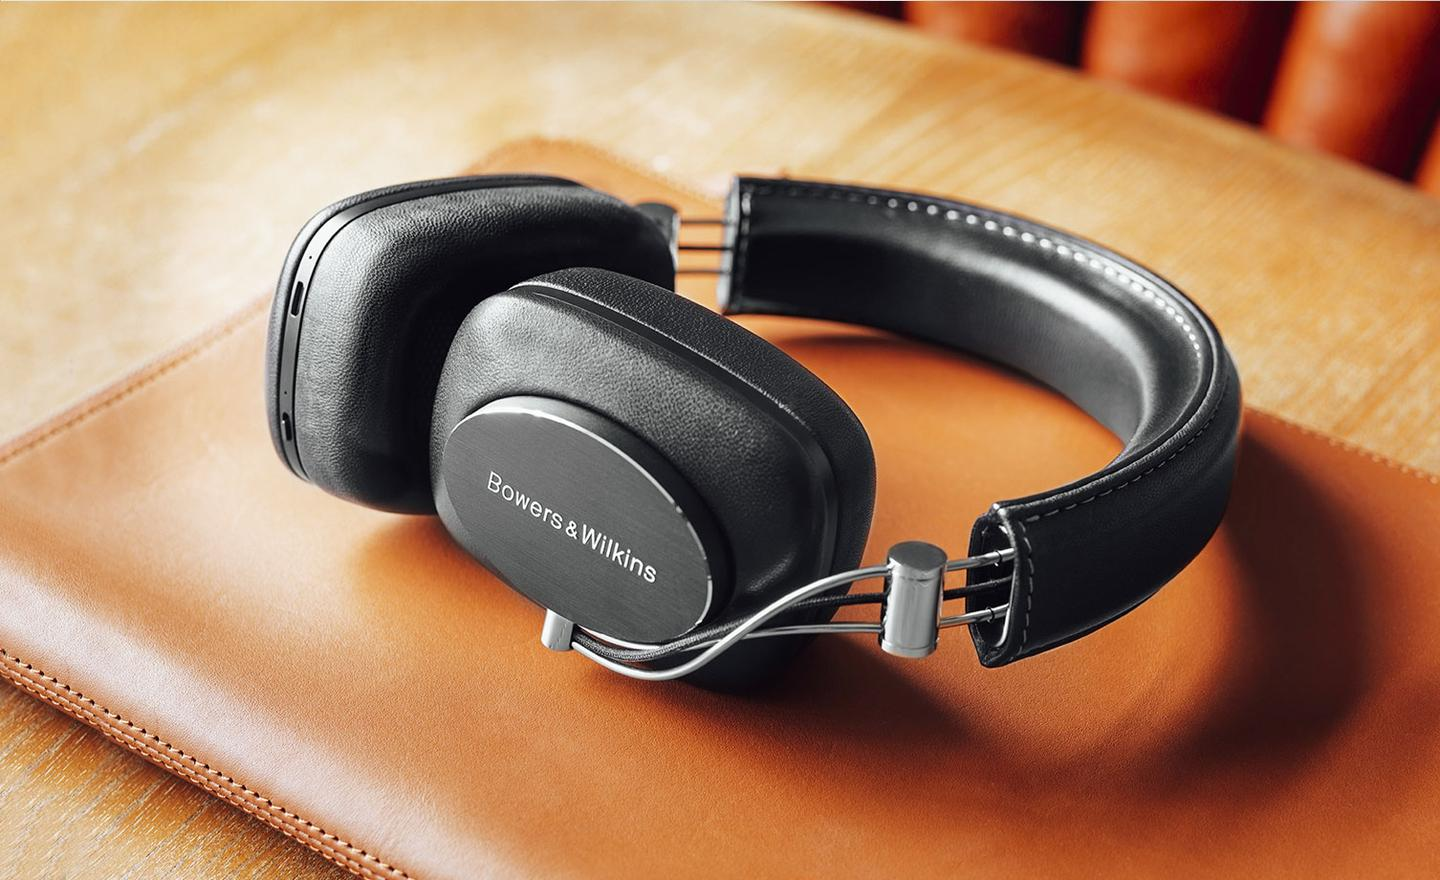 The Bowers & Wilkins P7 Wireless over-ear headphones